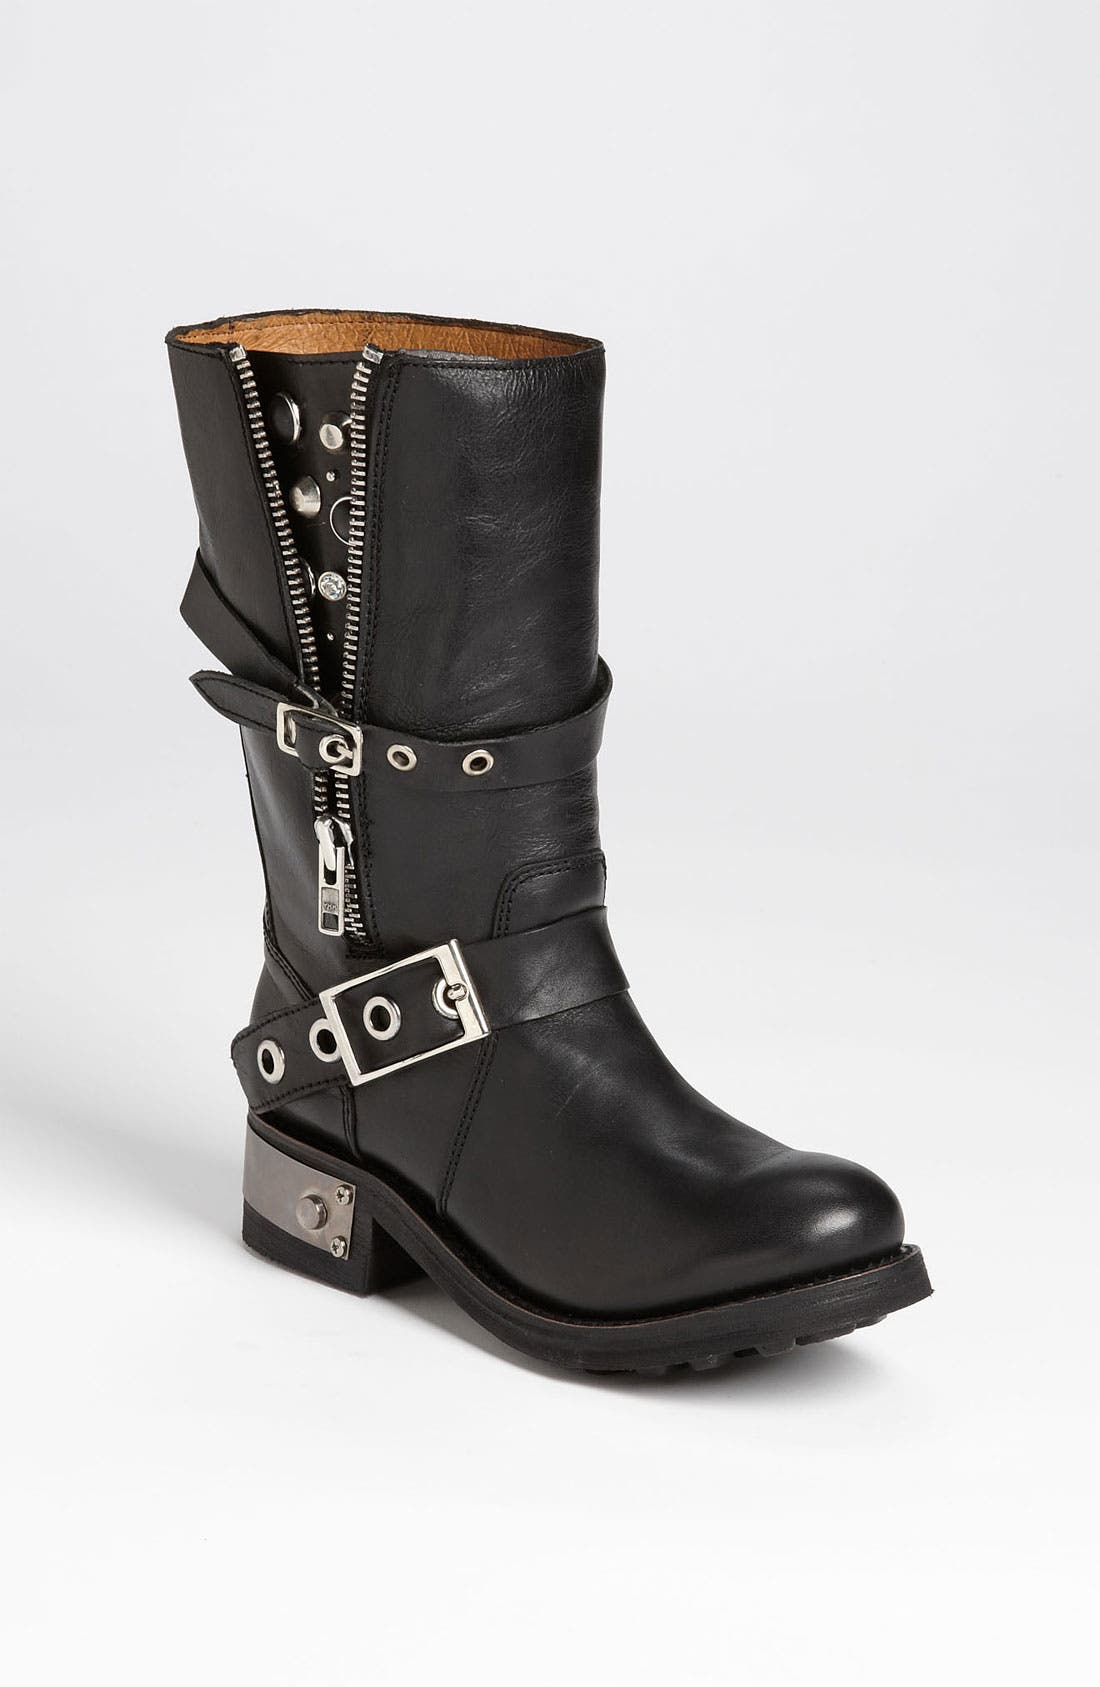 Alternate Image 1 Selected - ZiGi girl 'Tangle' Boot